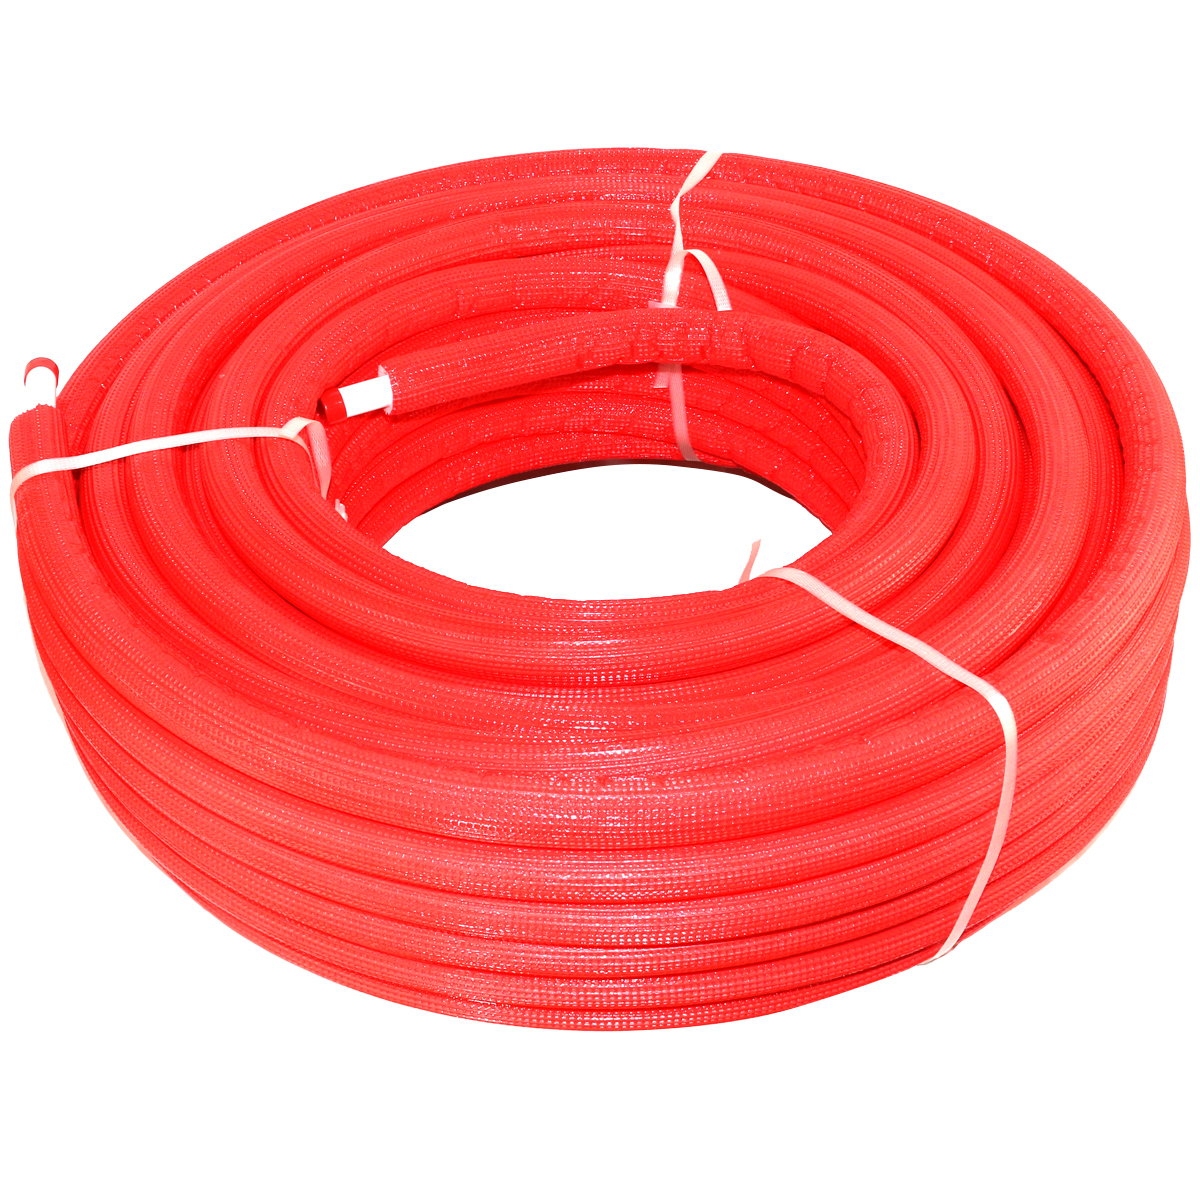 Insulation Pipe 20 x 2.0 × 50 m PEX-AL-PEX Red